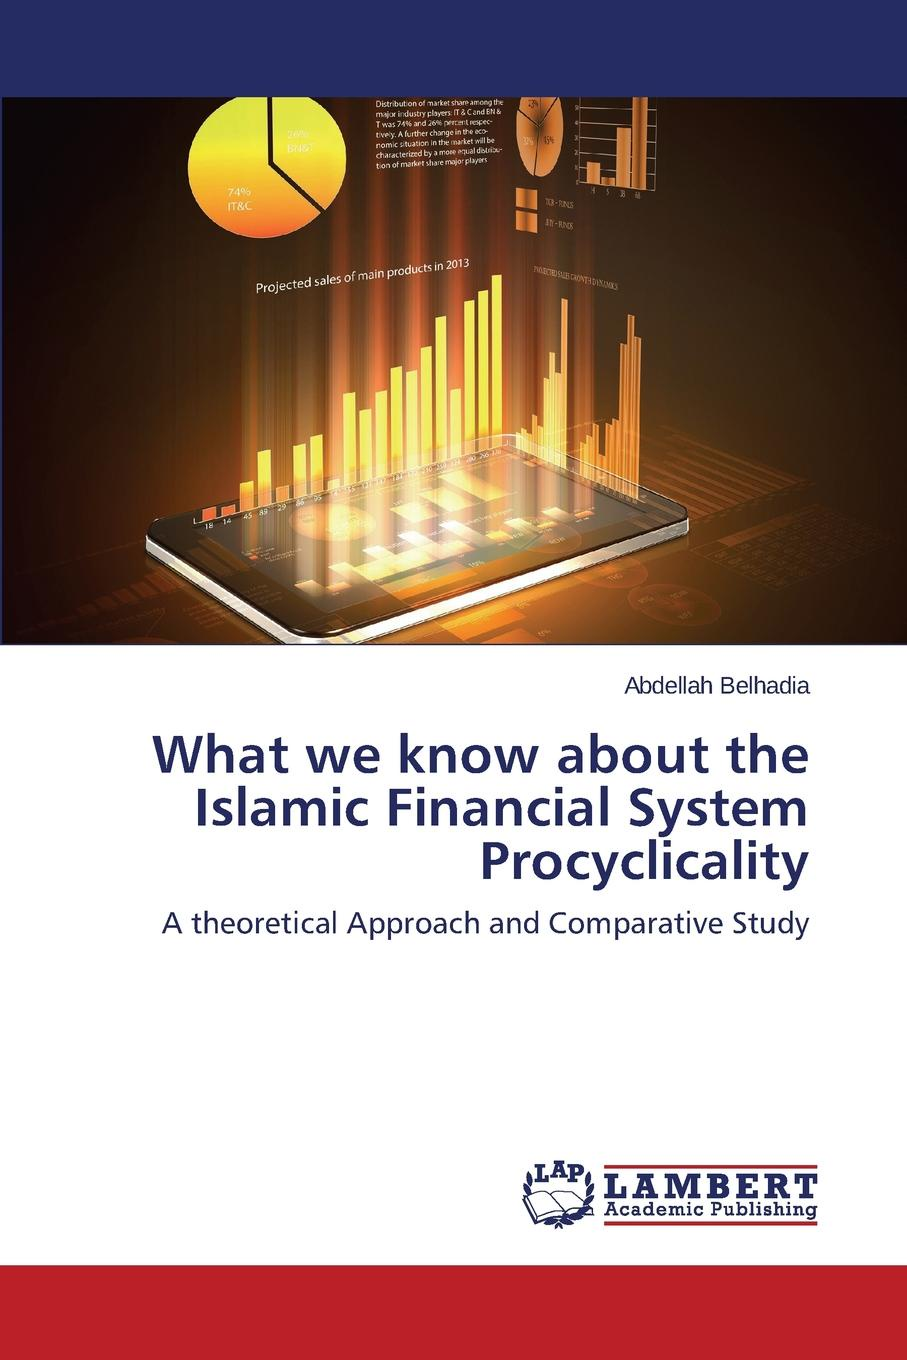 Belhadia Abdellah What we know about the Islamic Financial System Procyclicality tariq alrifai islamic finance and the new financial system an ethical approach to preventing future financial crises